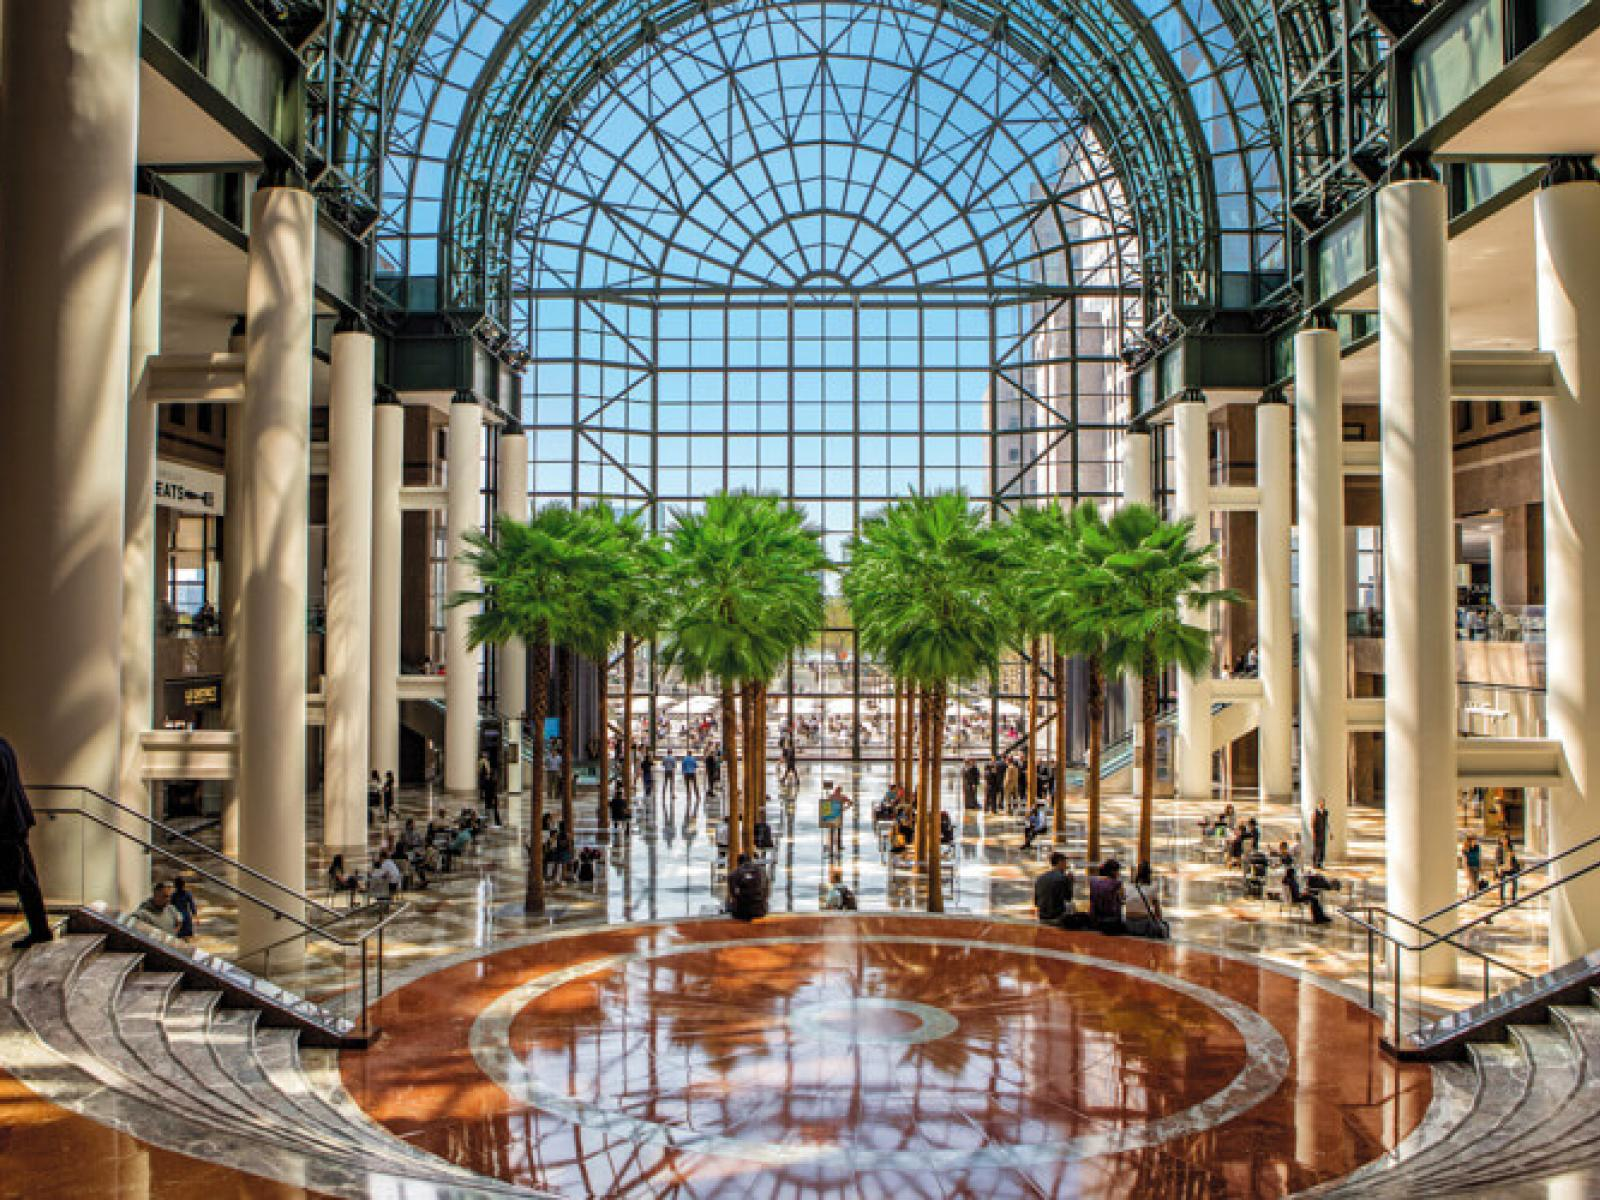 Trees, glass atrium windows and coral-colored marble floors in the Winter Garden